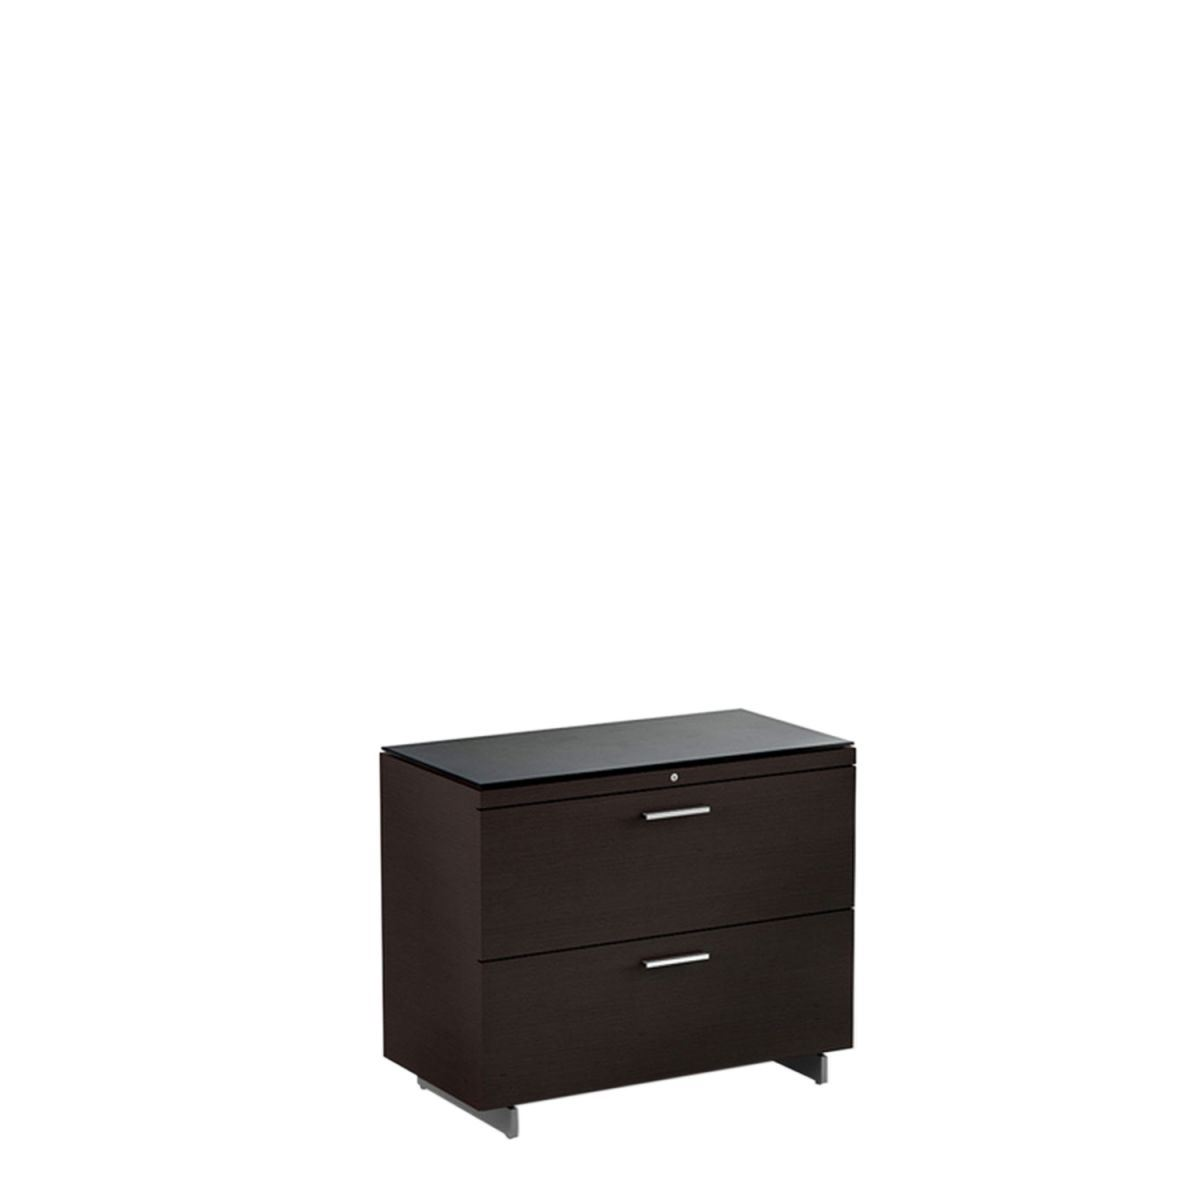 file cabinet nightstand drawer pdx lateral reviews ottman furniture manor lark wayfair